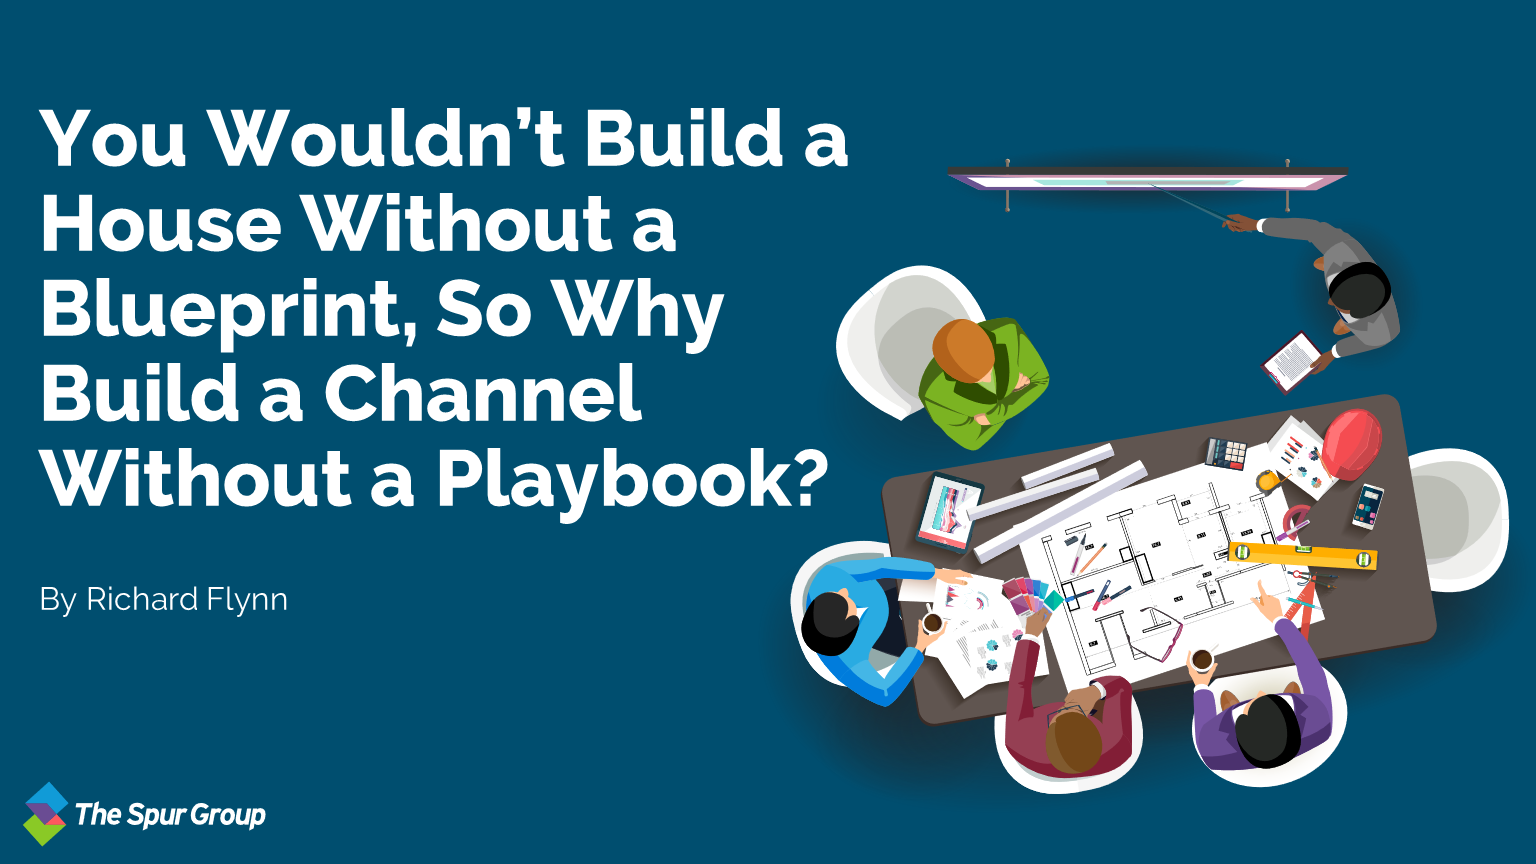 You Wouldn't Build a House Without a Blueprint, So Why Build a Channel Without a Playbook?